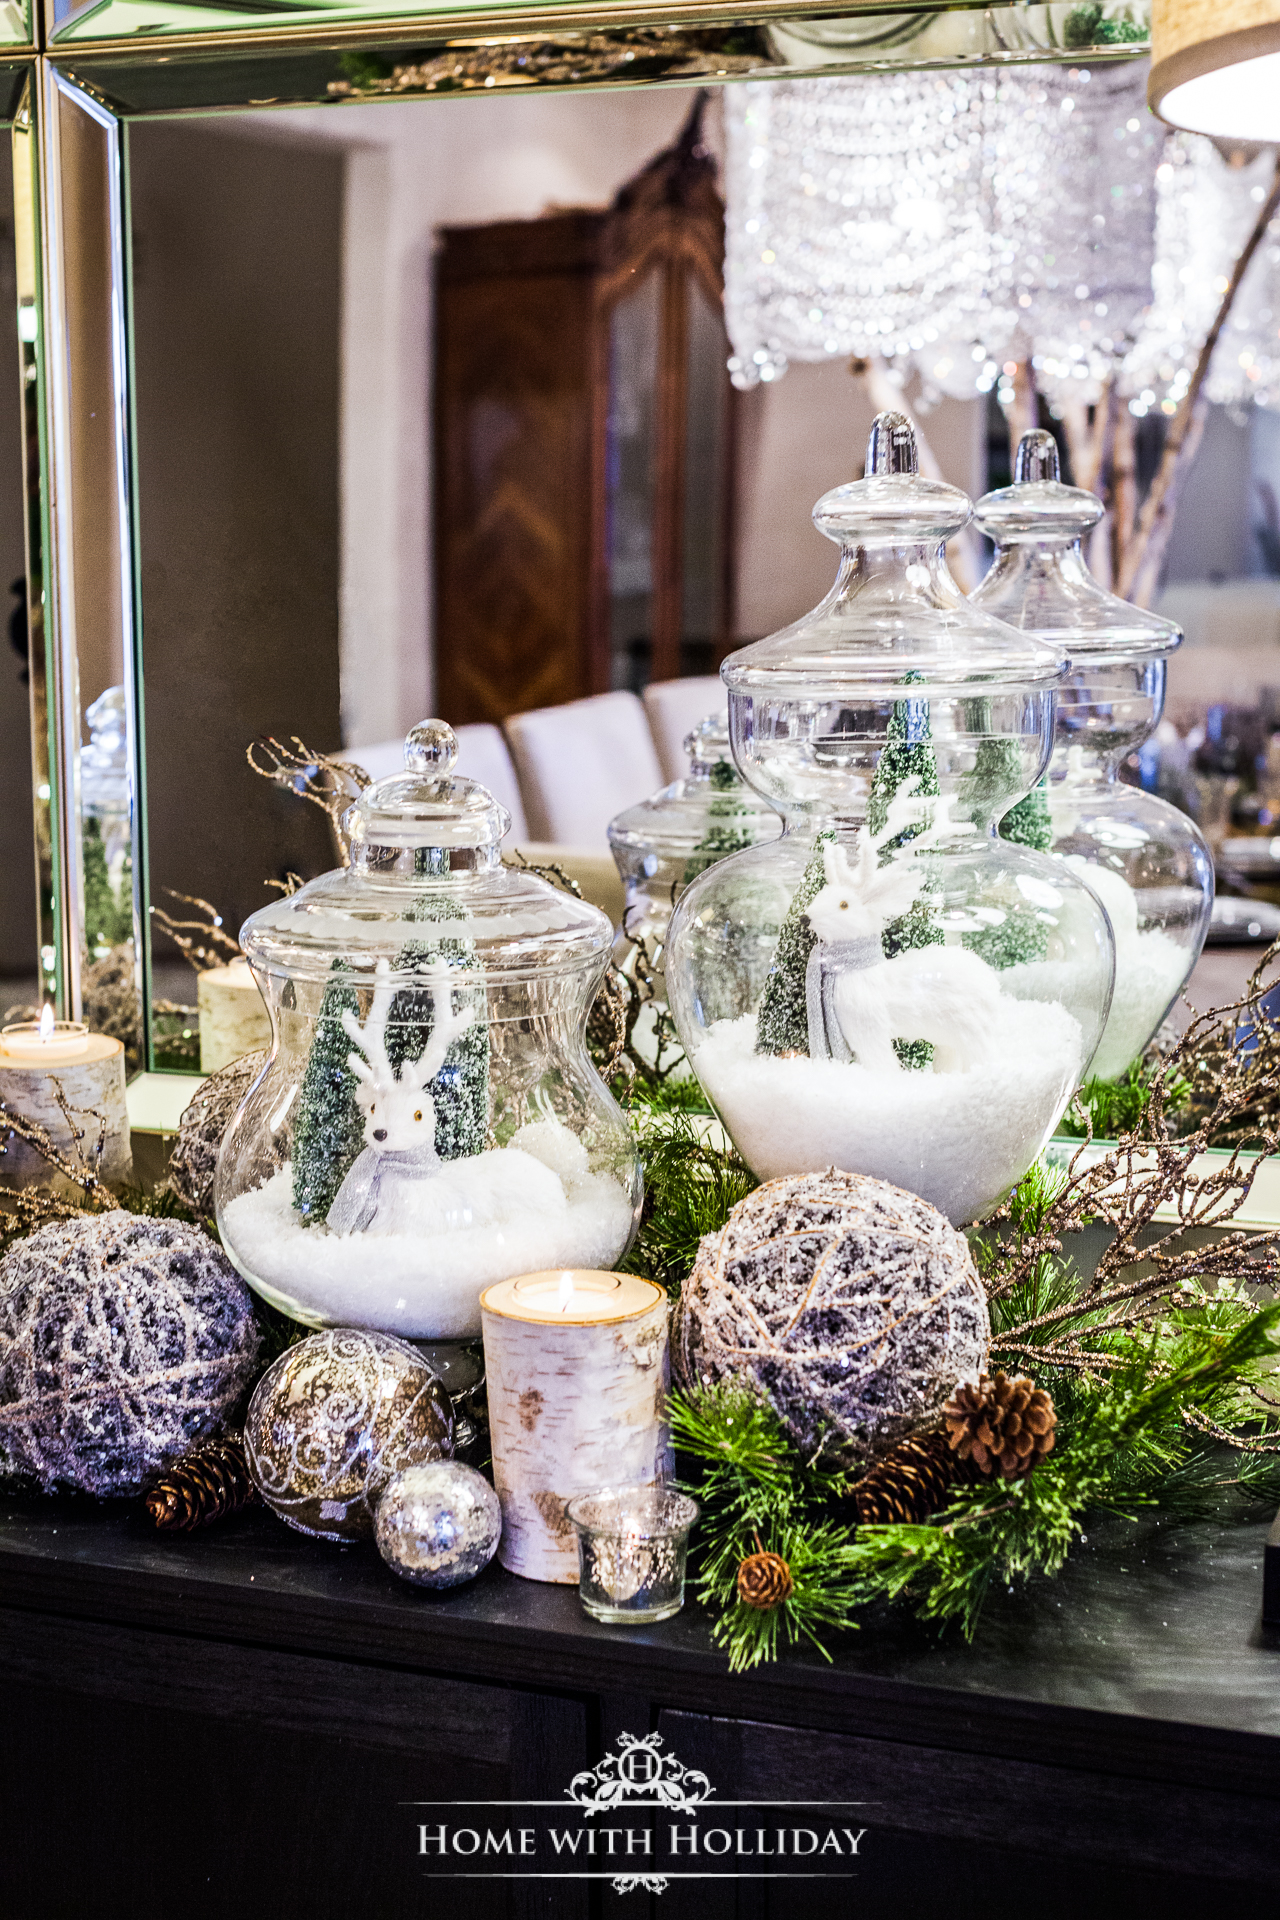 Winter White Christmas Centerpiece with Apothecary Jars - Home with Holliday